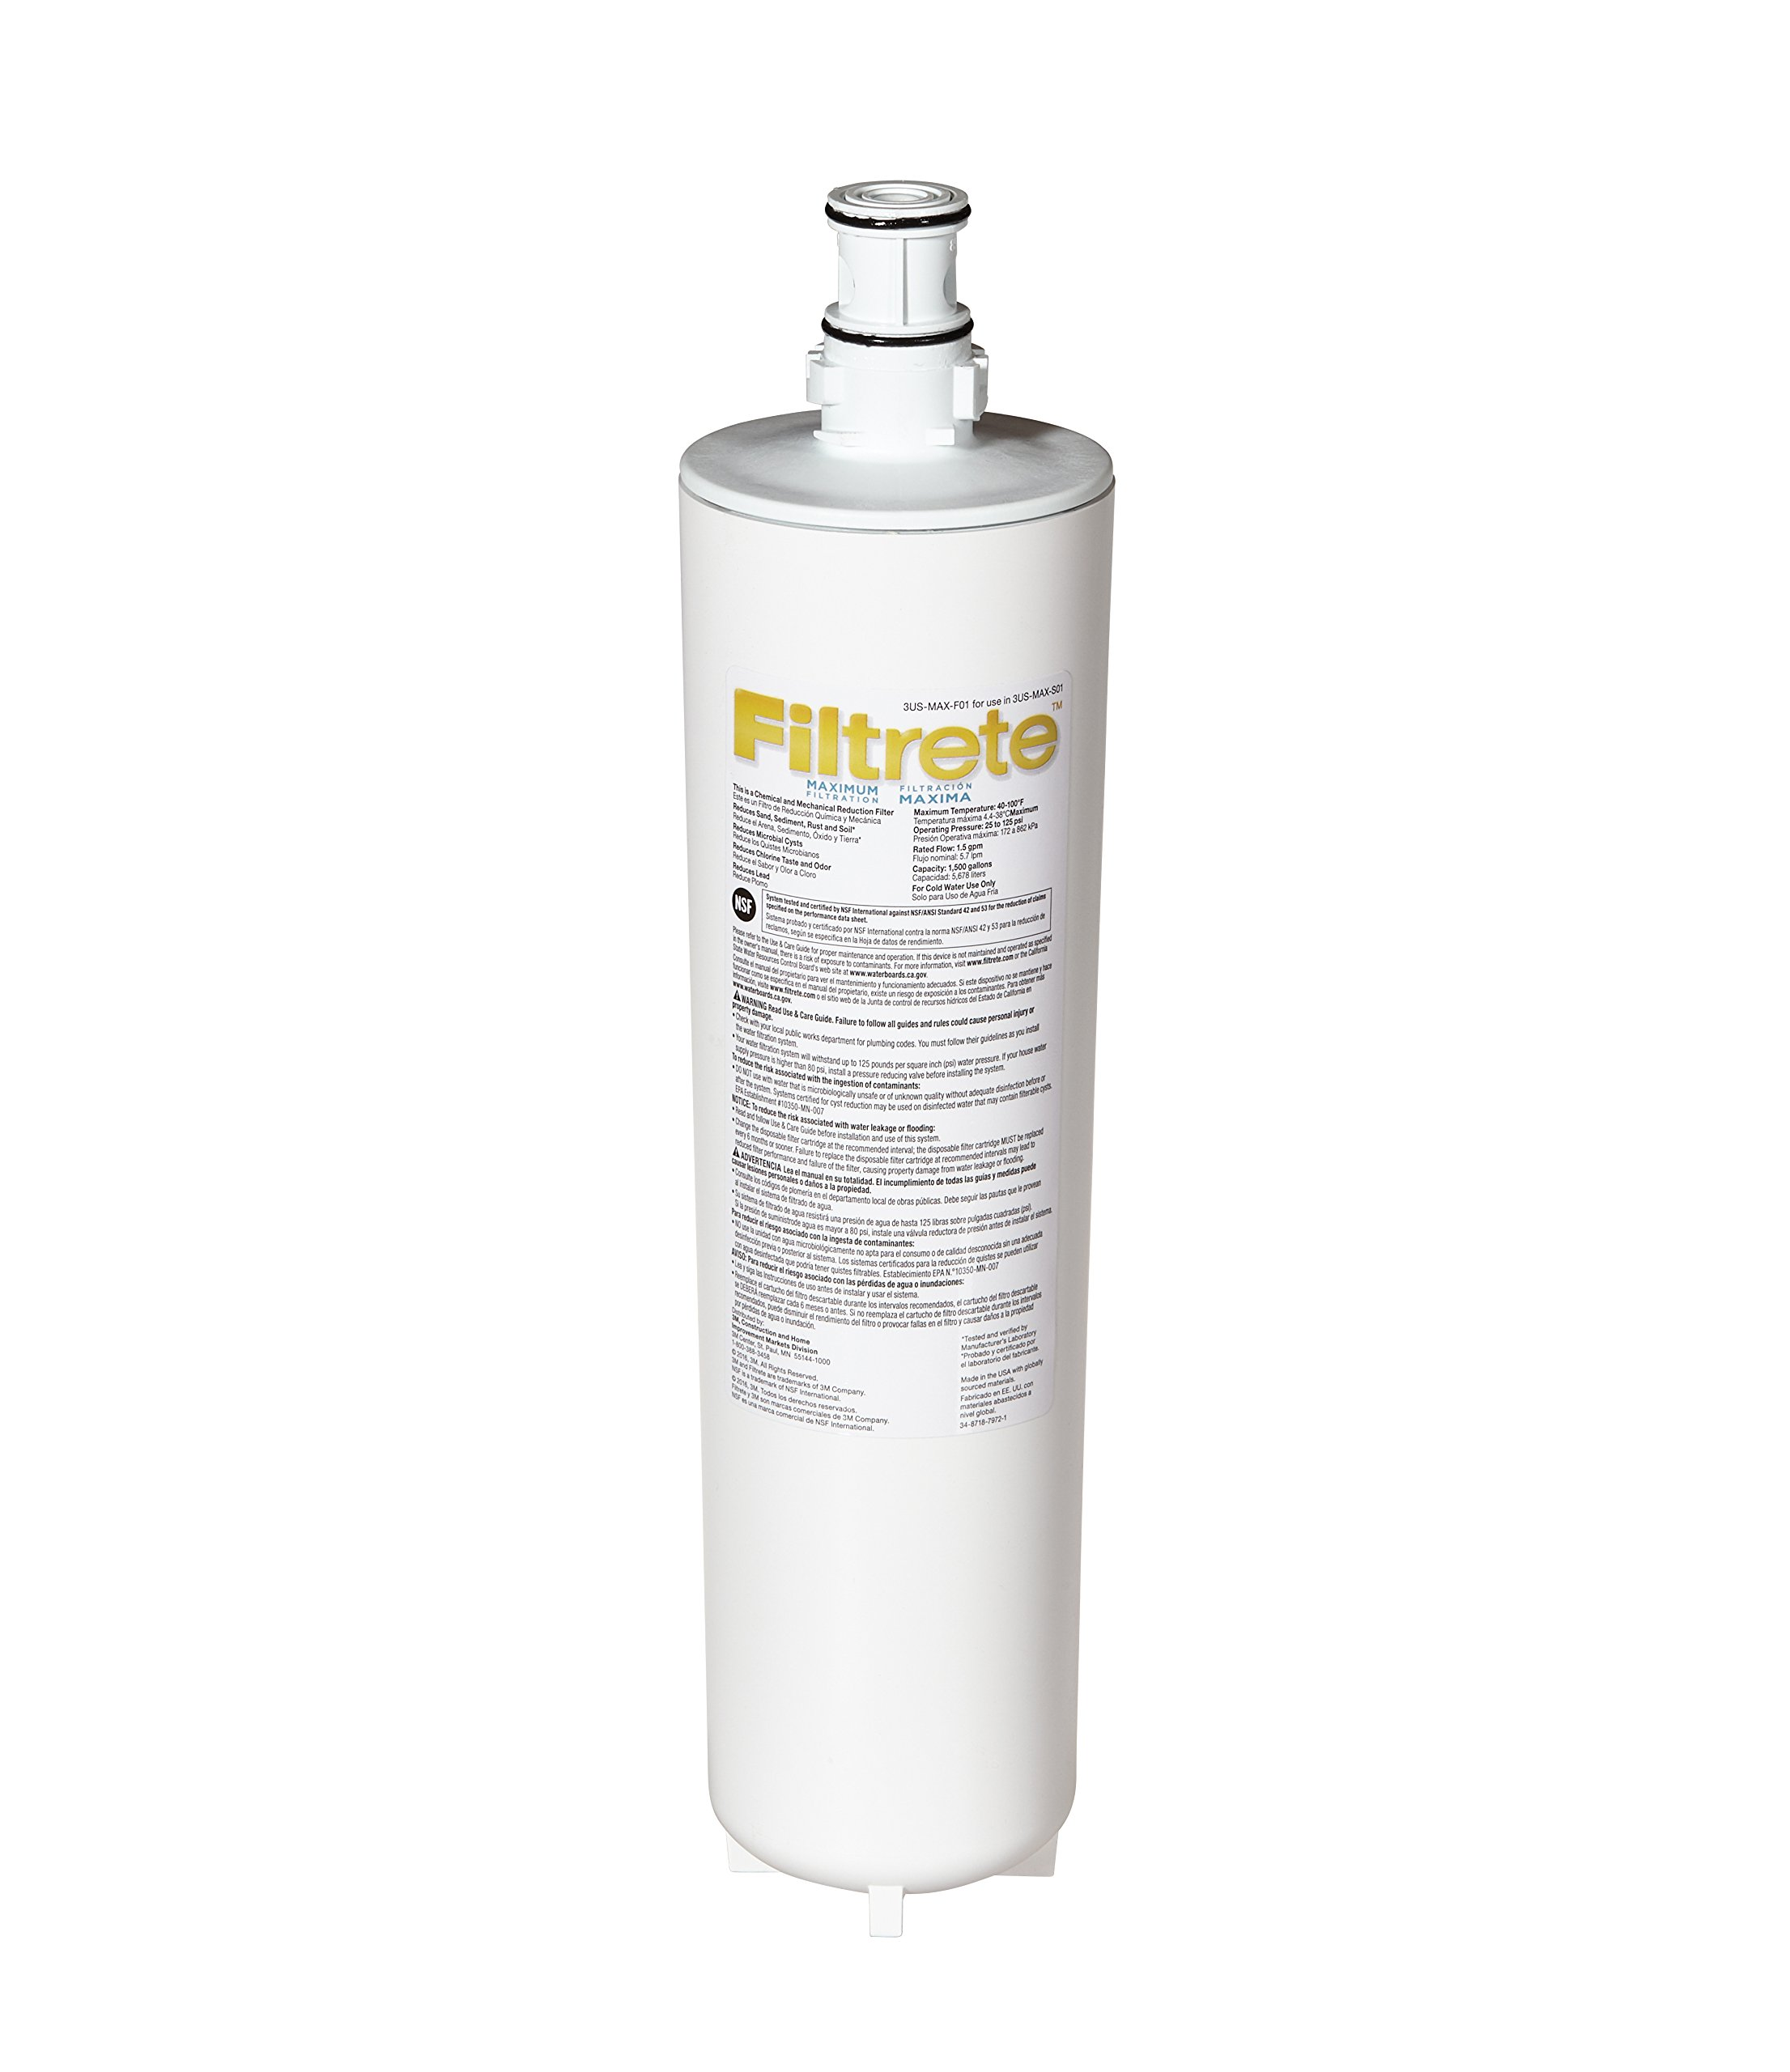 Filtrete Maximum Under Sink Water Filtration Filter, Reduces 99% Lead + Much More (3US-MAX-F01) by Filtrete